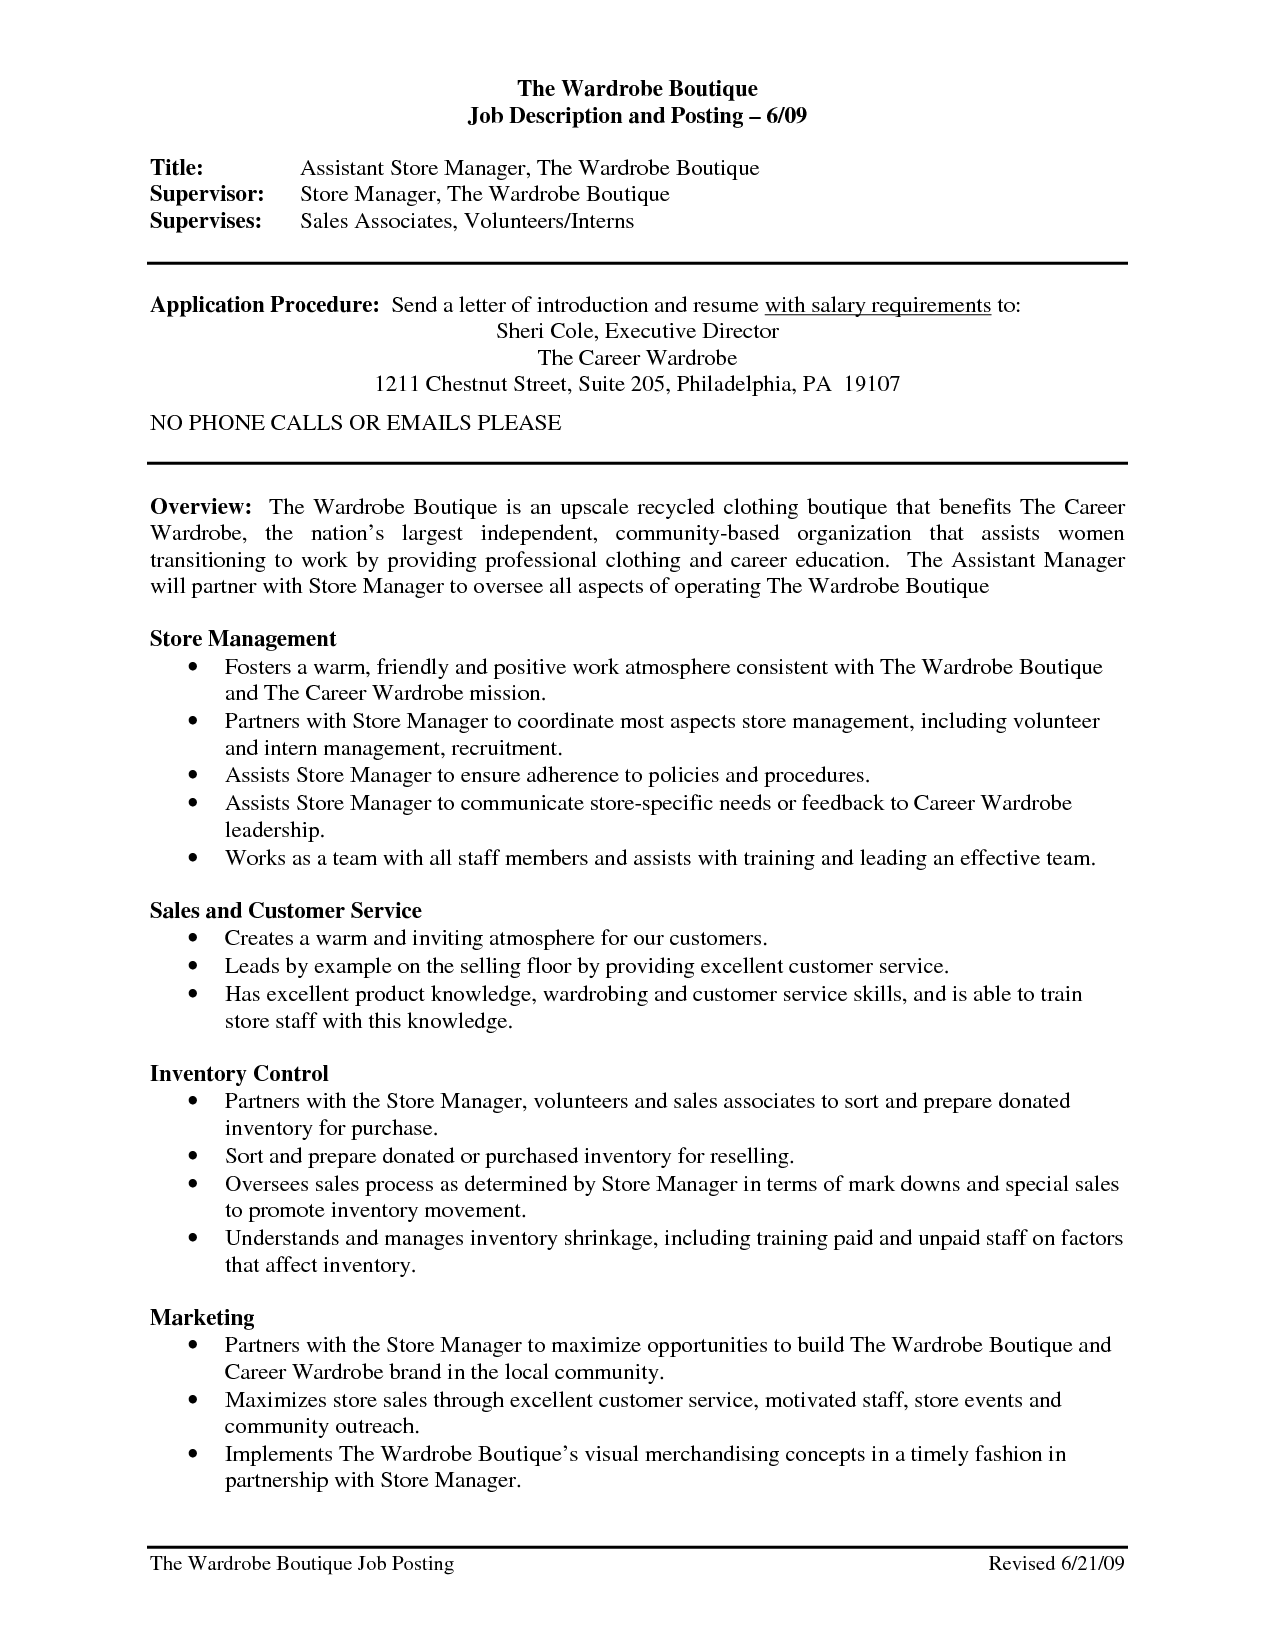 Store Manager Job Description Resume Professionally Written Engineer Accomplishment Examples For Resume